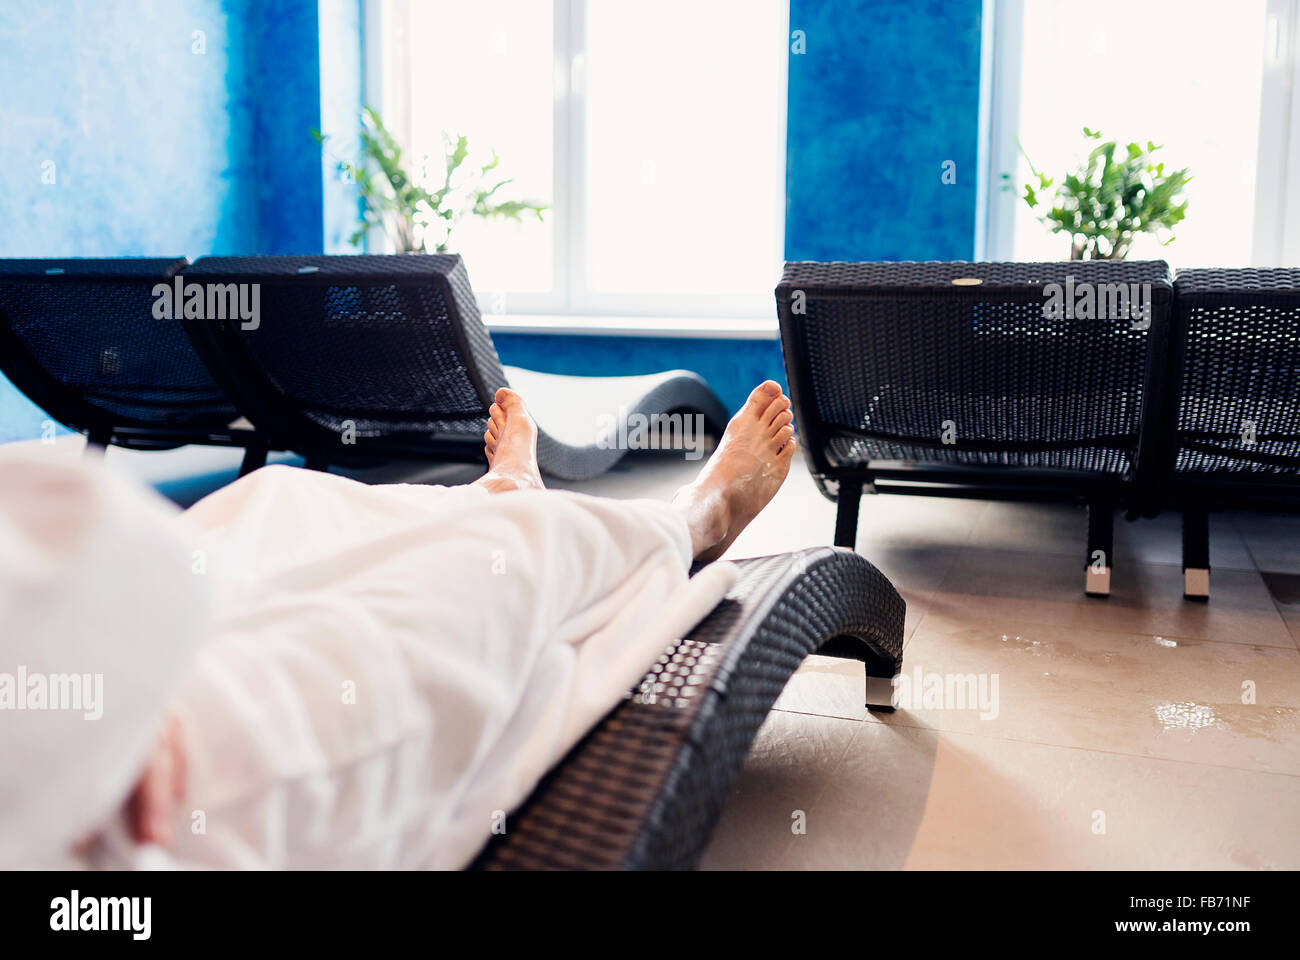 Man in bathrobe Stock Photo